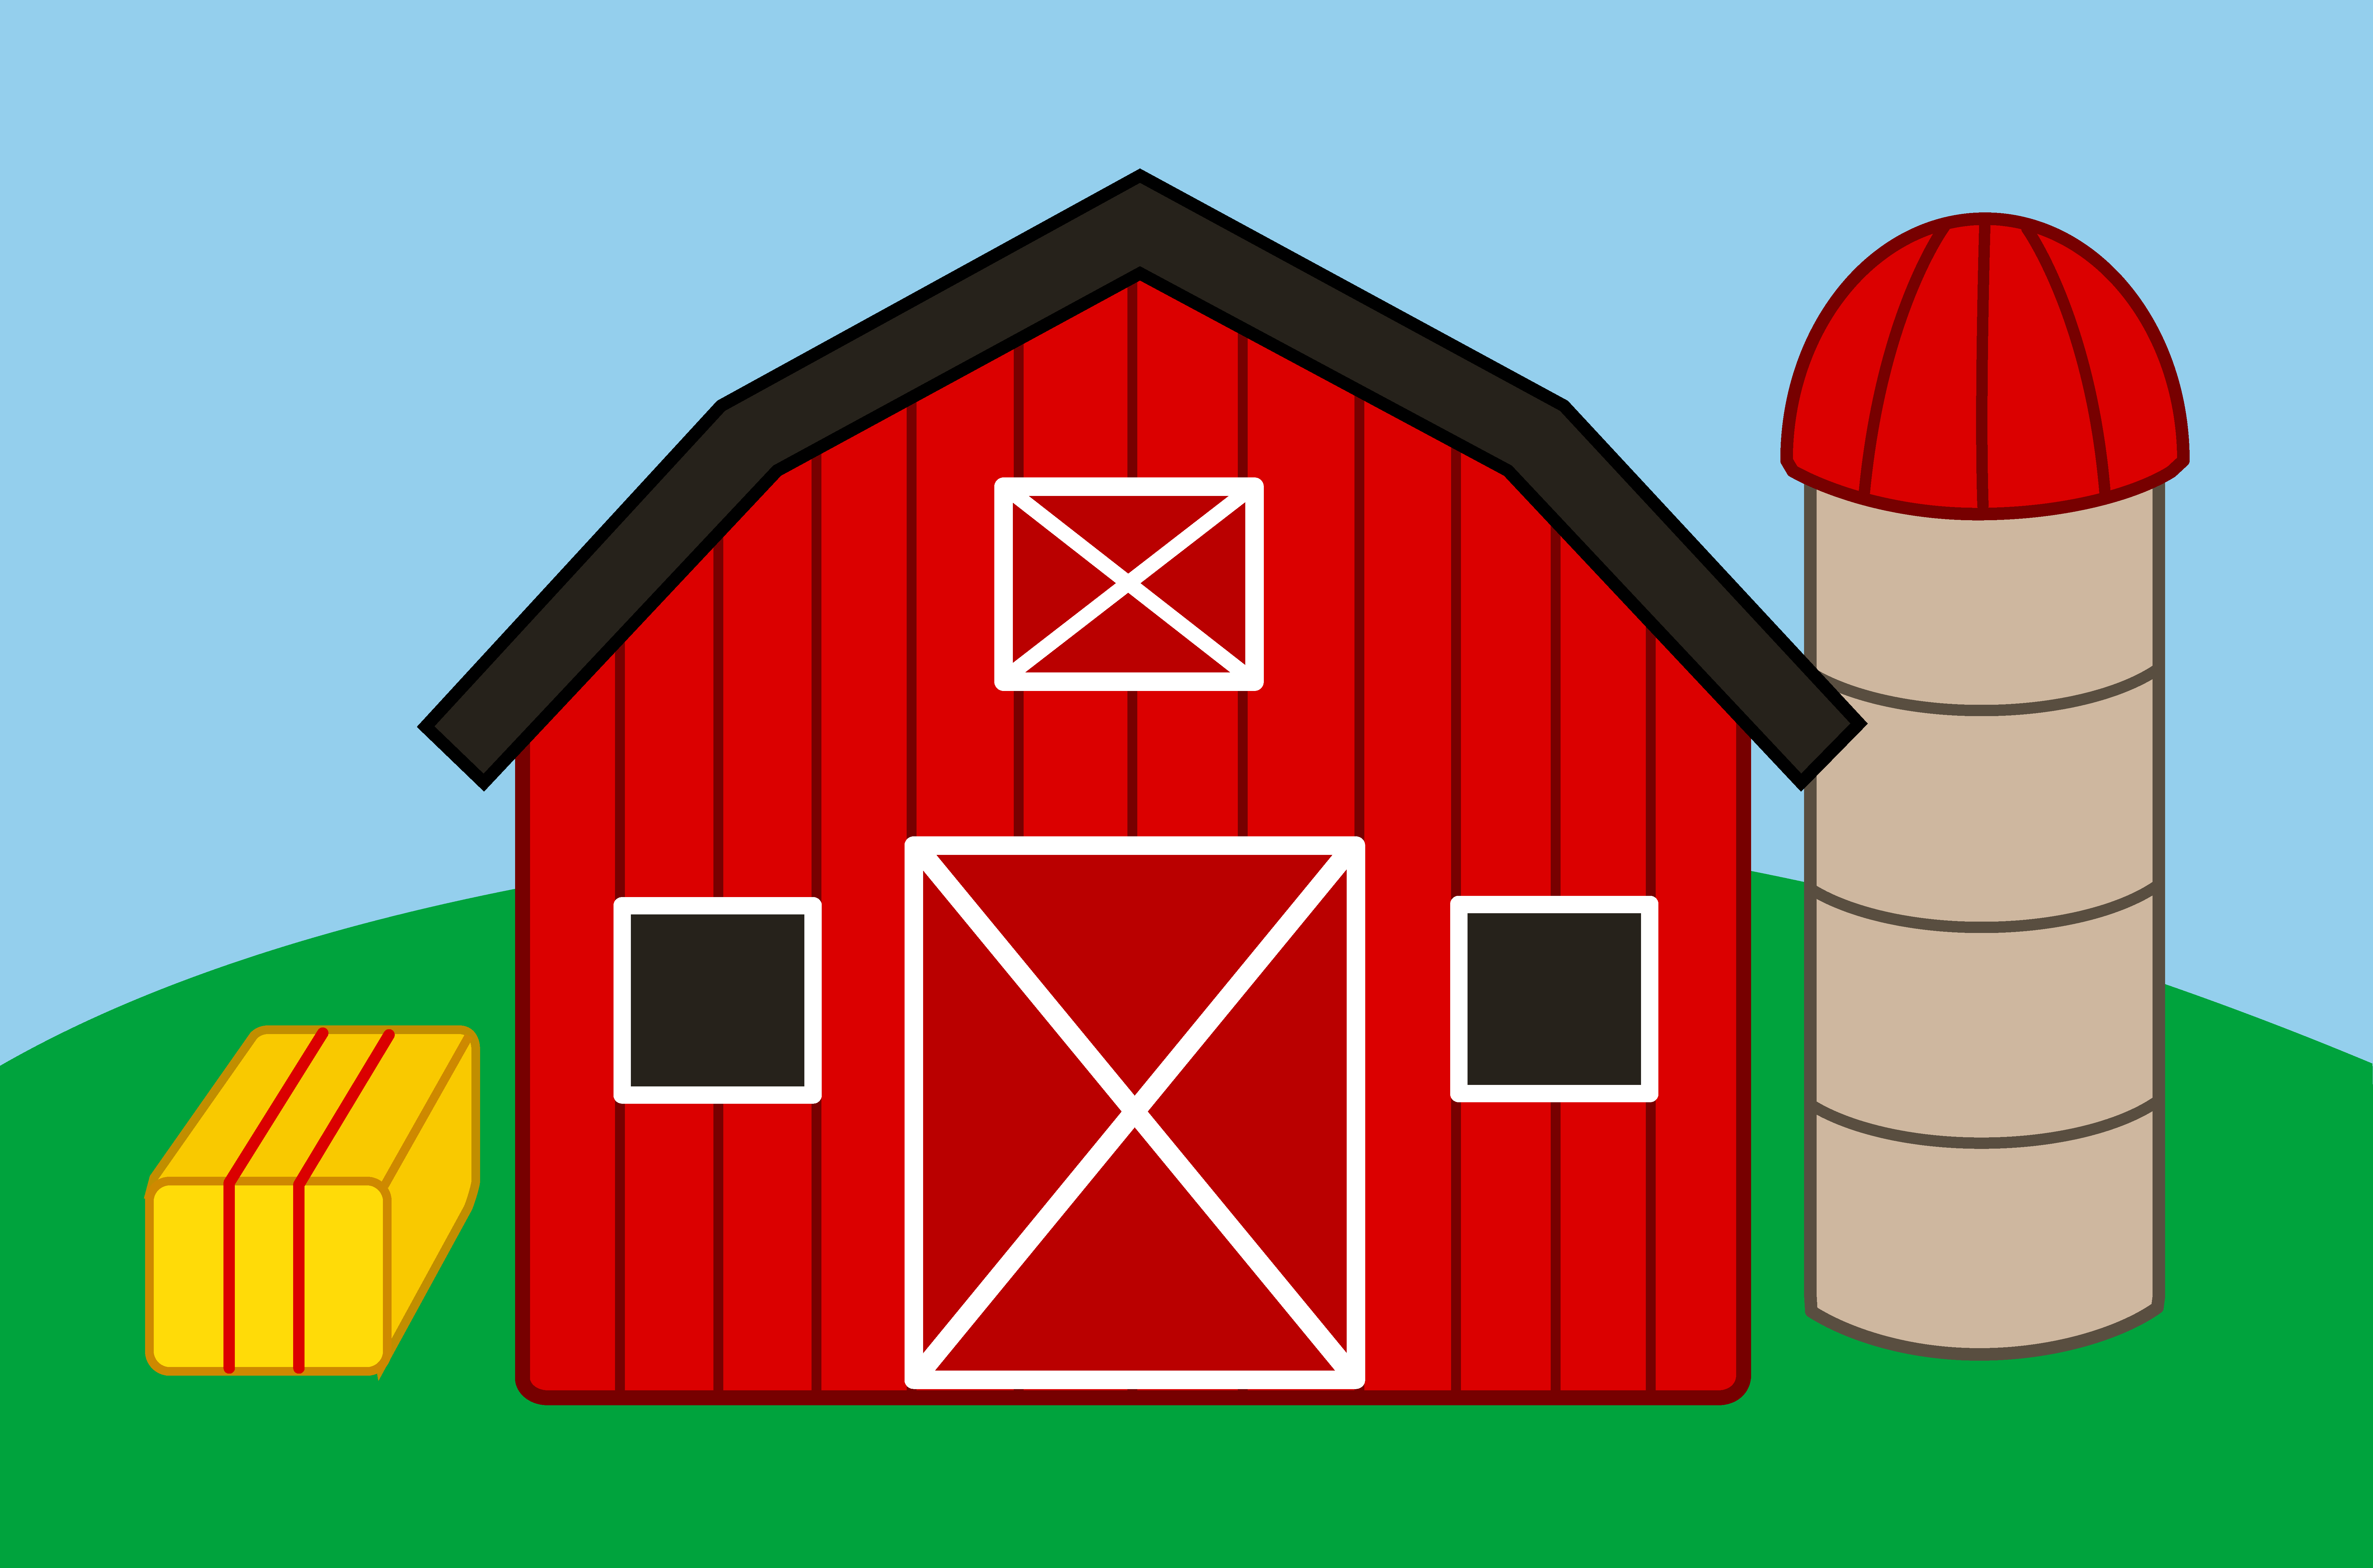 Farm clipart cartoon. House